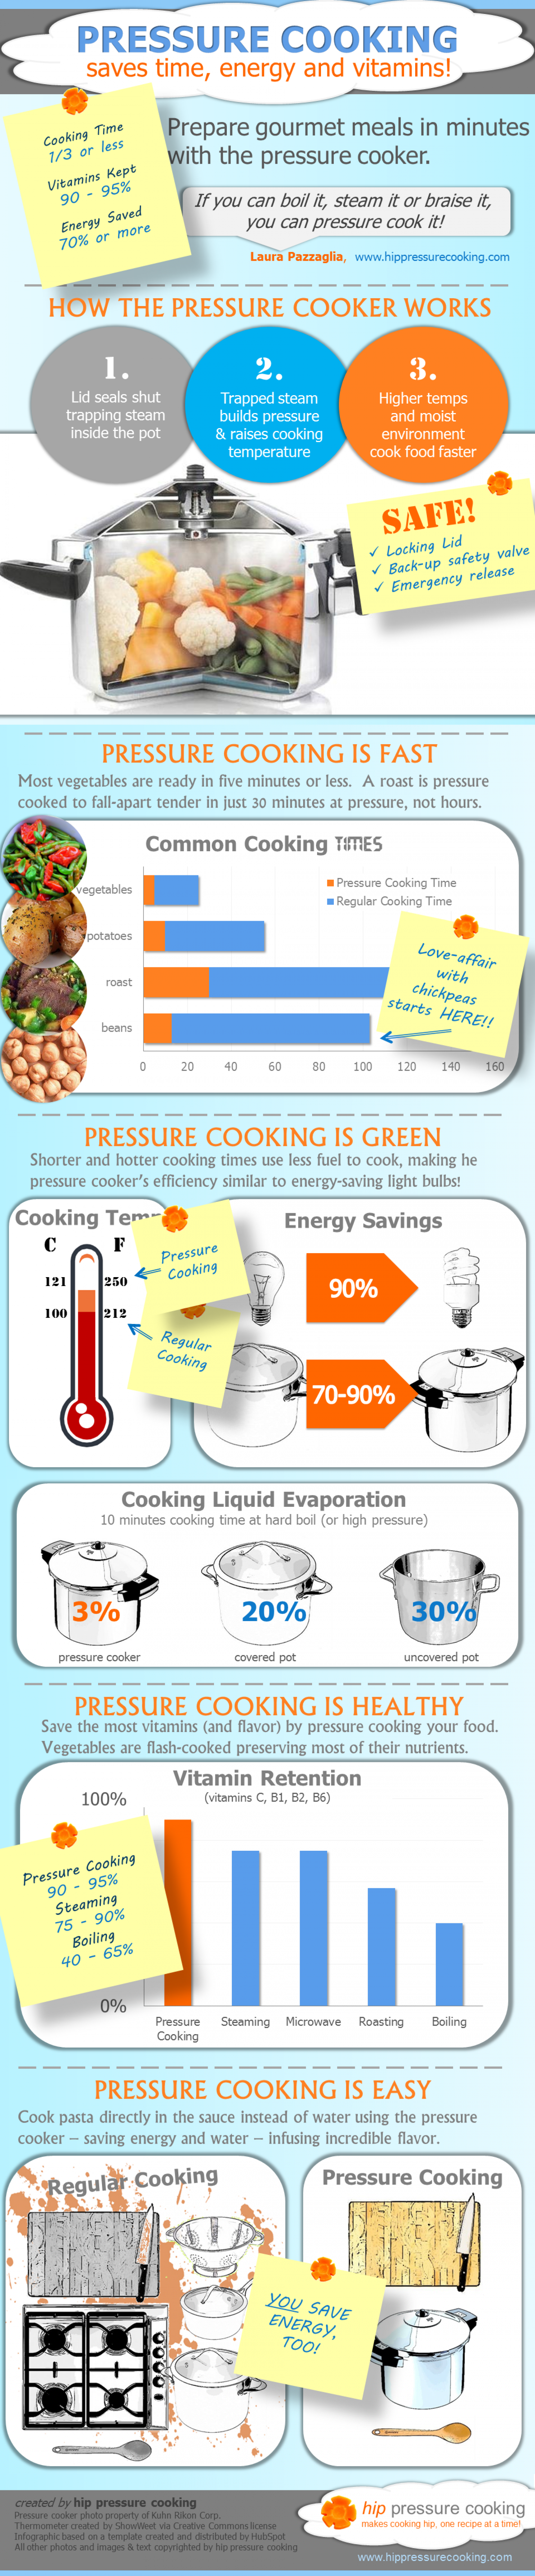 Pressure Cooking Saves Time, Energy & Vitamins Infographic